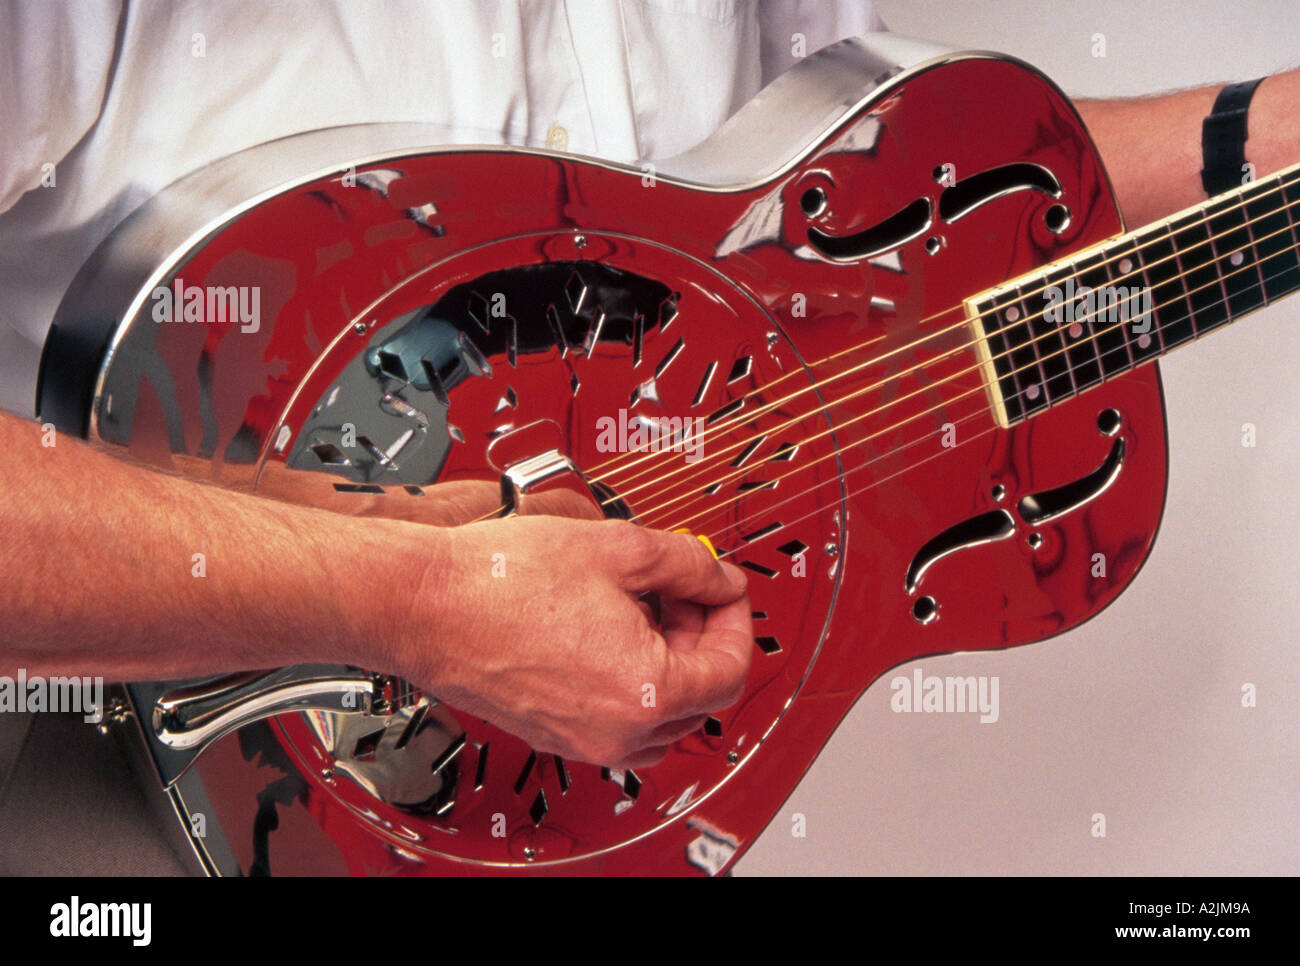 Mid 1930s Style O resonator guitar similar to that used by Mark Knopfler - Stock Image